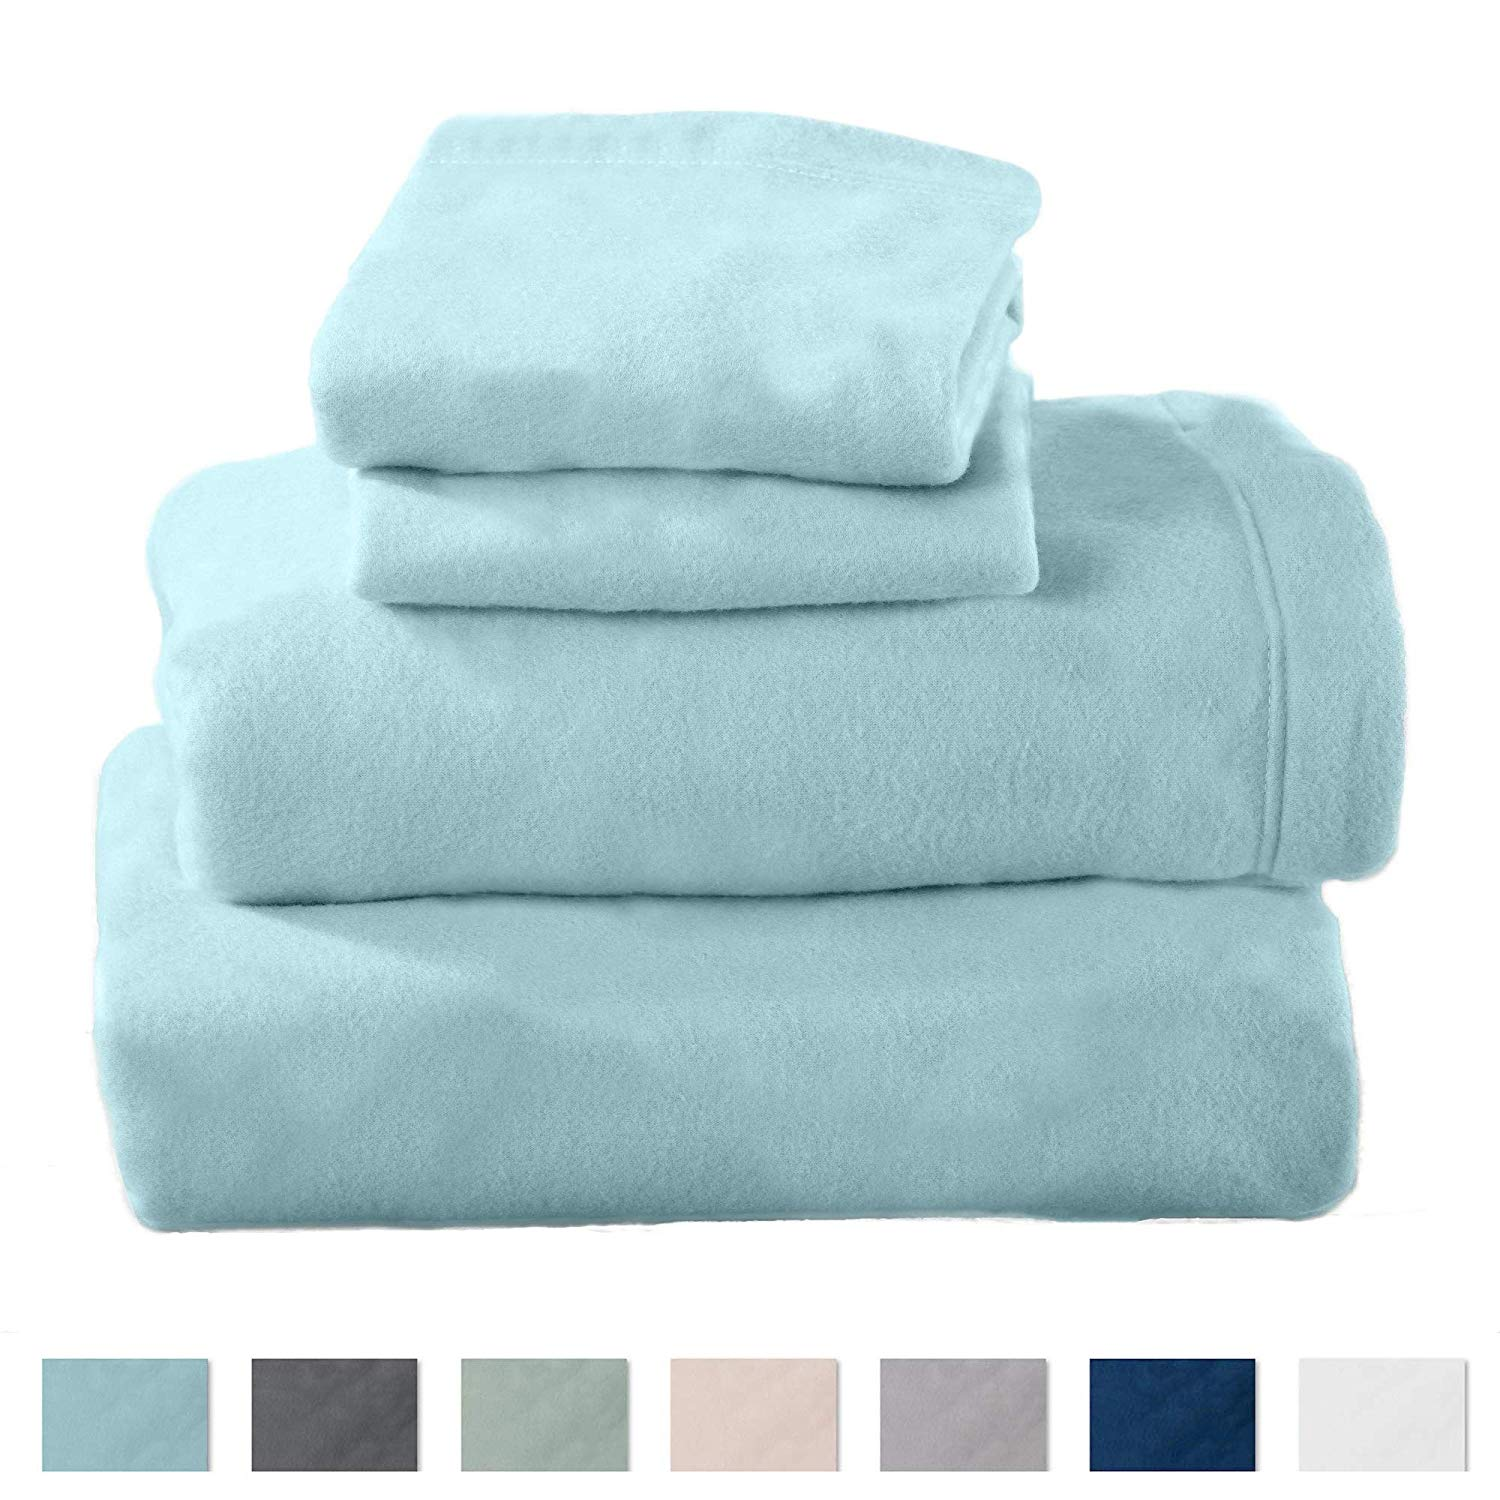 Home Fashion Designs May Collection Super Soft Extra Plush Polar Fleece Sheet Set